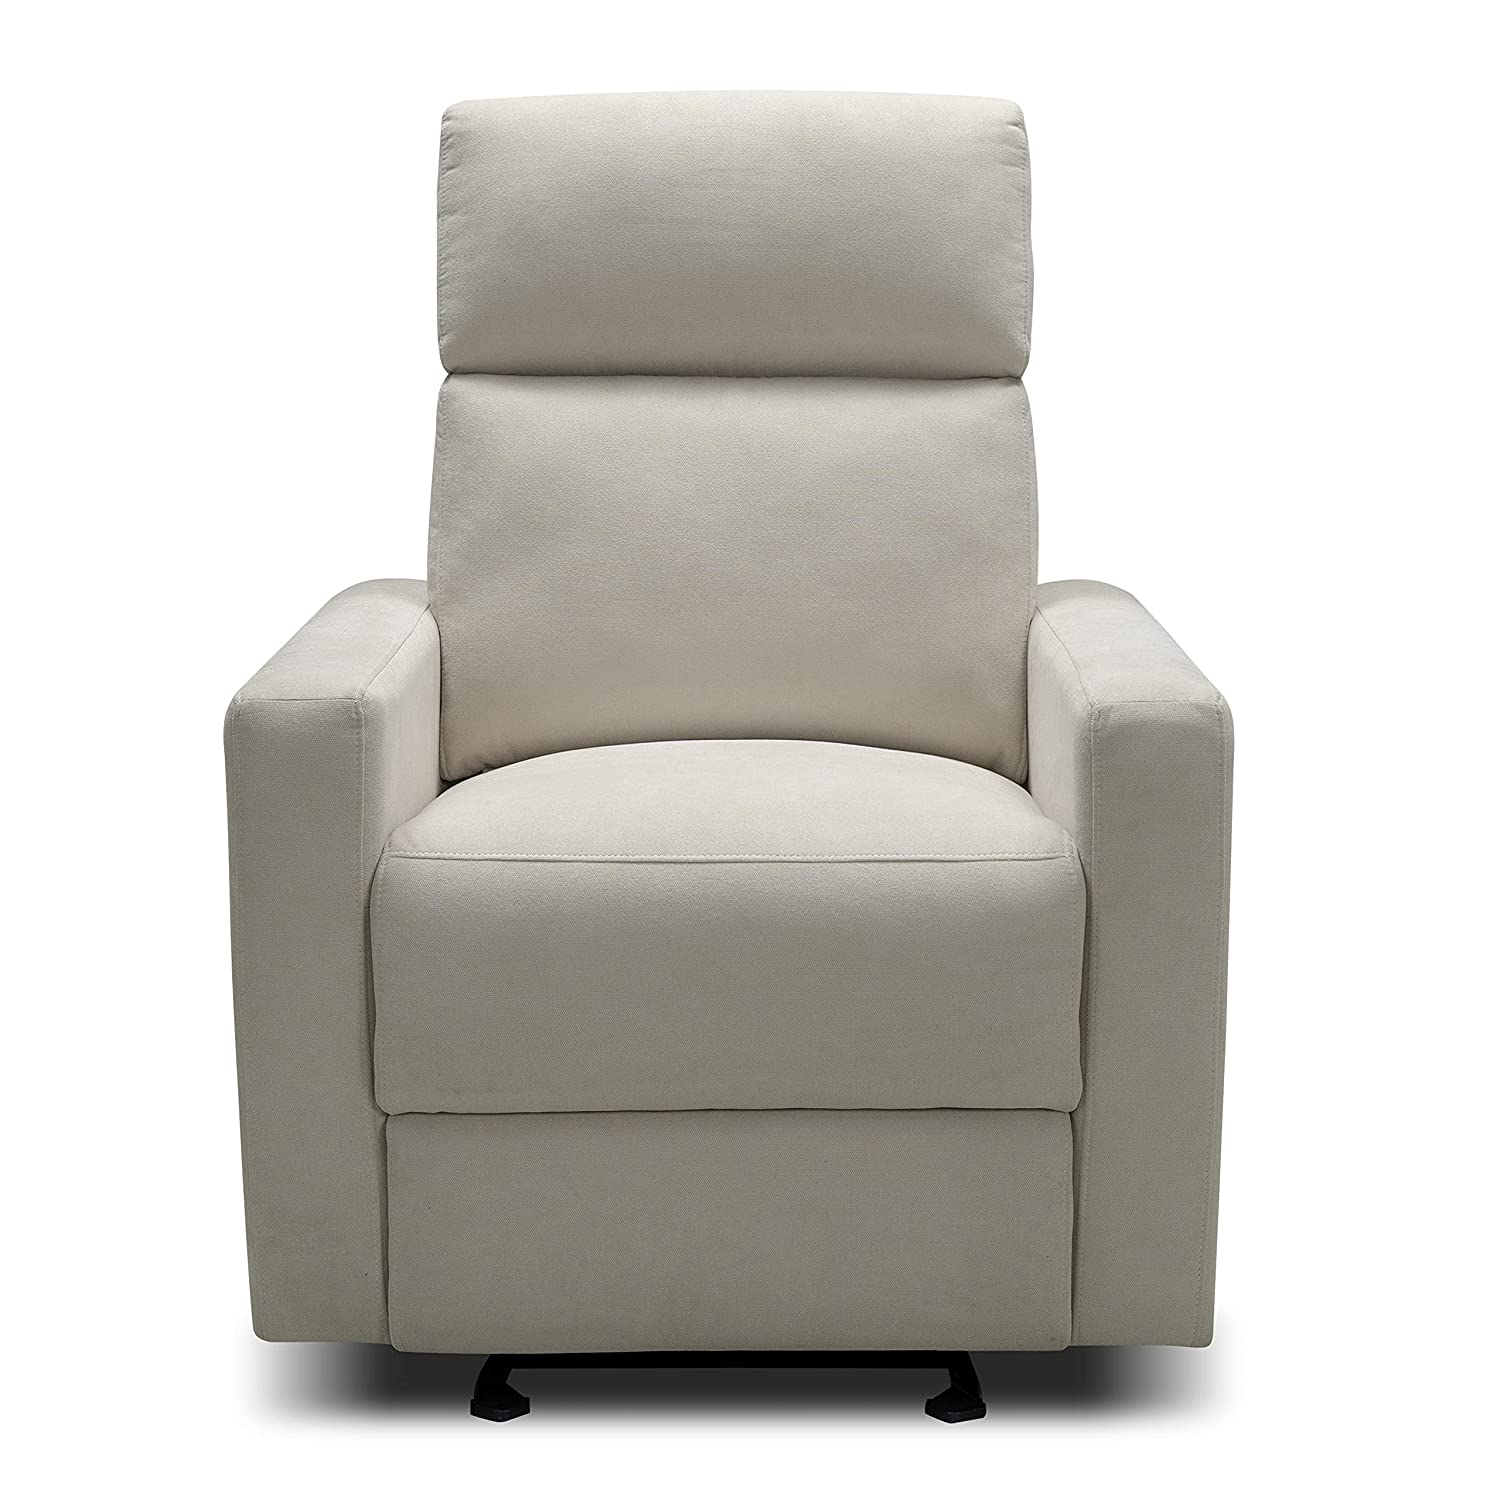 The Glider by Nurture& | Premium Power Recliner Nursery Glider Chair with Adjustable Head Support | Designed with a Thoughtful Combination of Function and Comfort | Built-in USB Charger (Ivory)